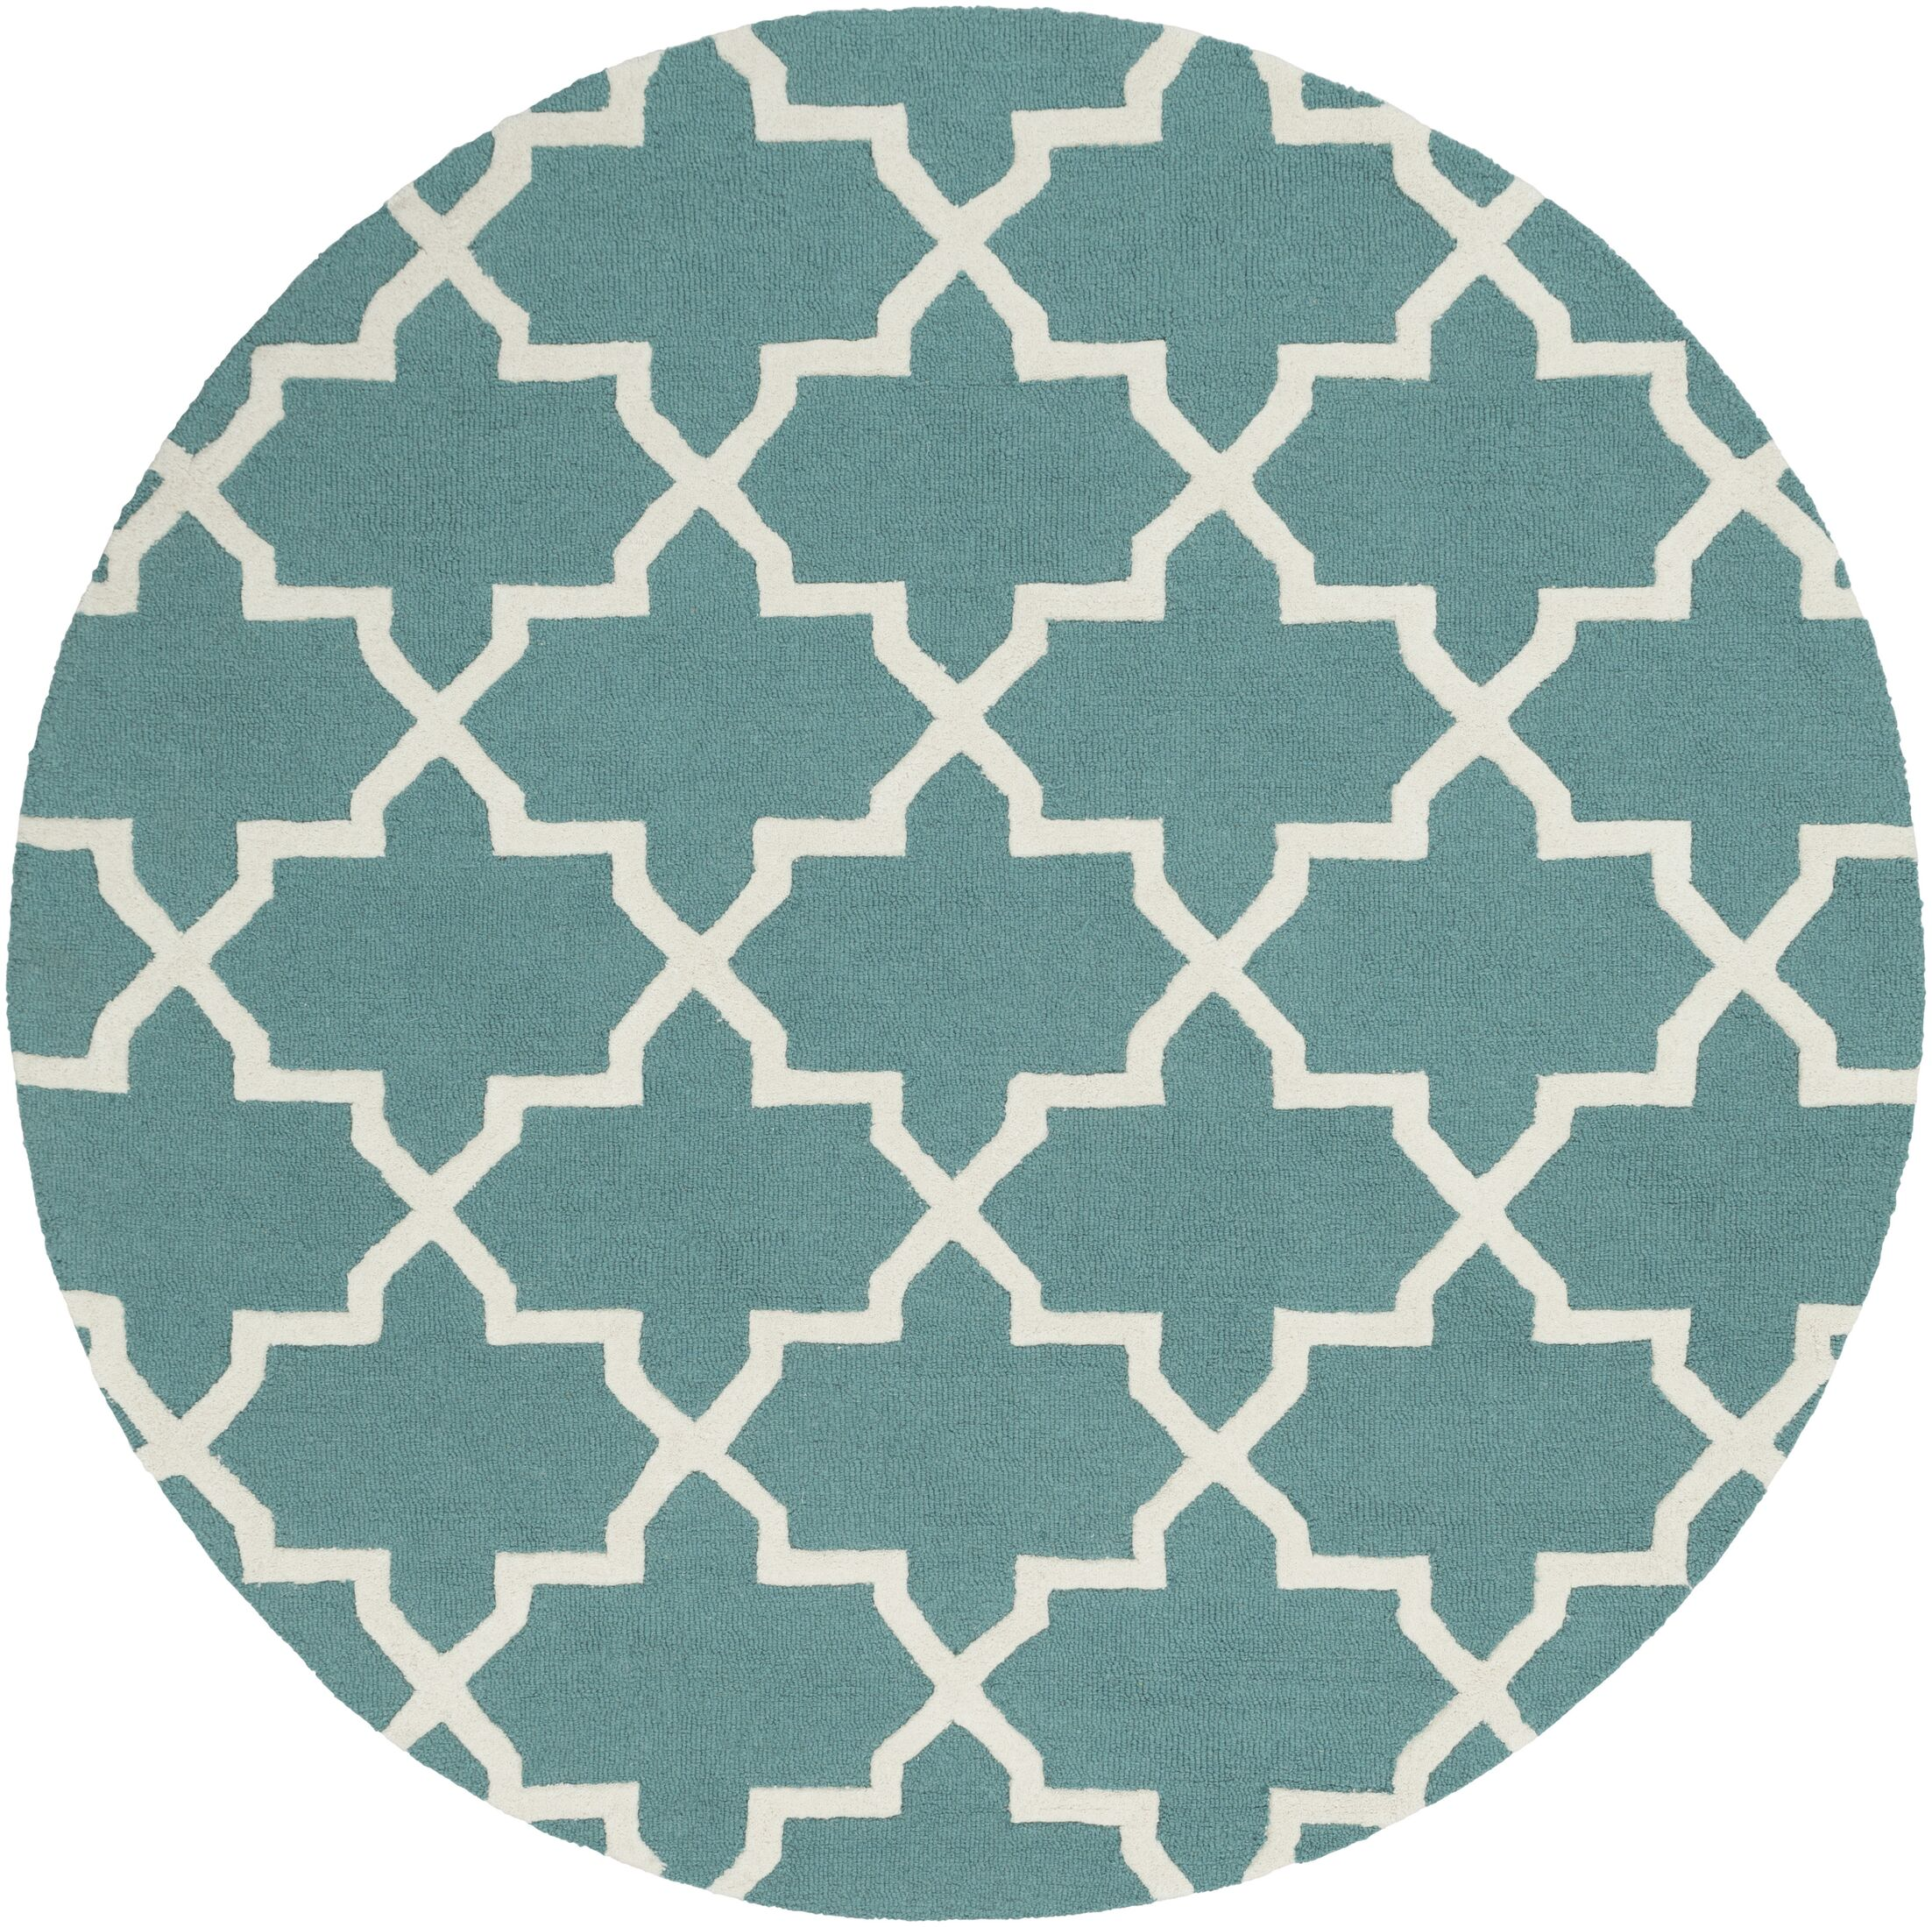 Blaisdell Teal Geometric Keely Area Rug Rug Size: Round 8'